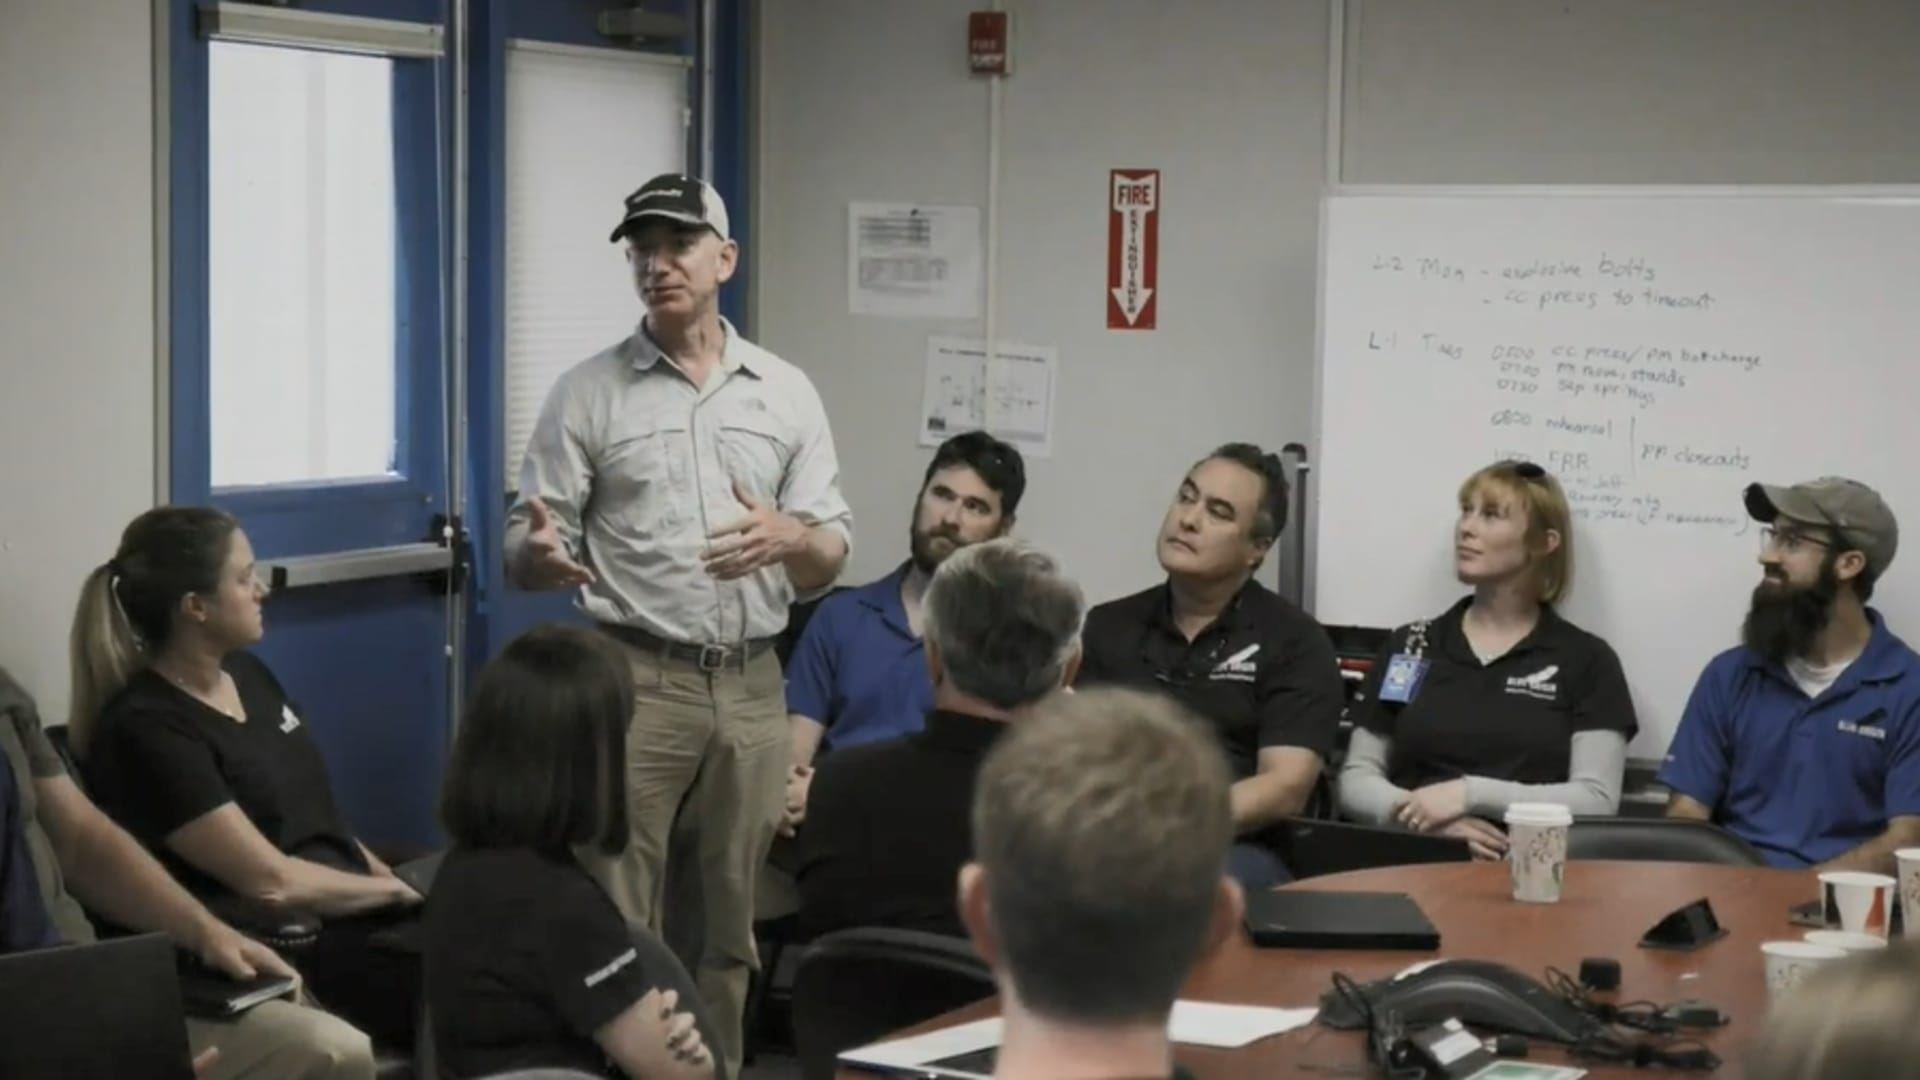 Blue Origin founder Jeff Bezos speaks to company employees during a launch preparation meeting in 2019.